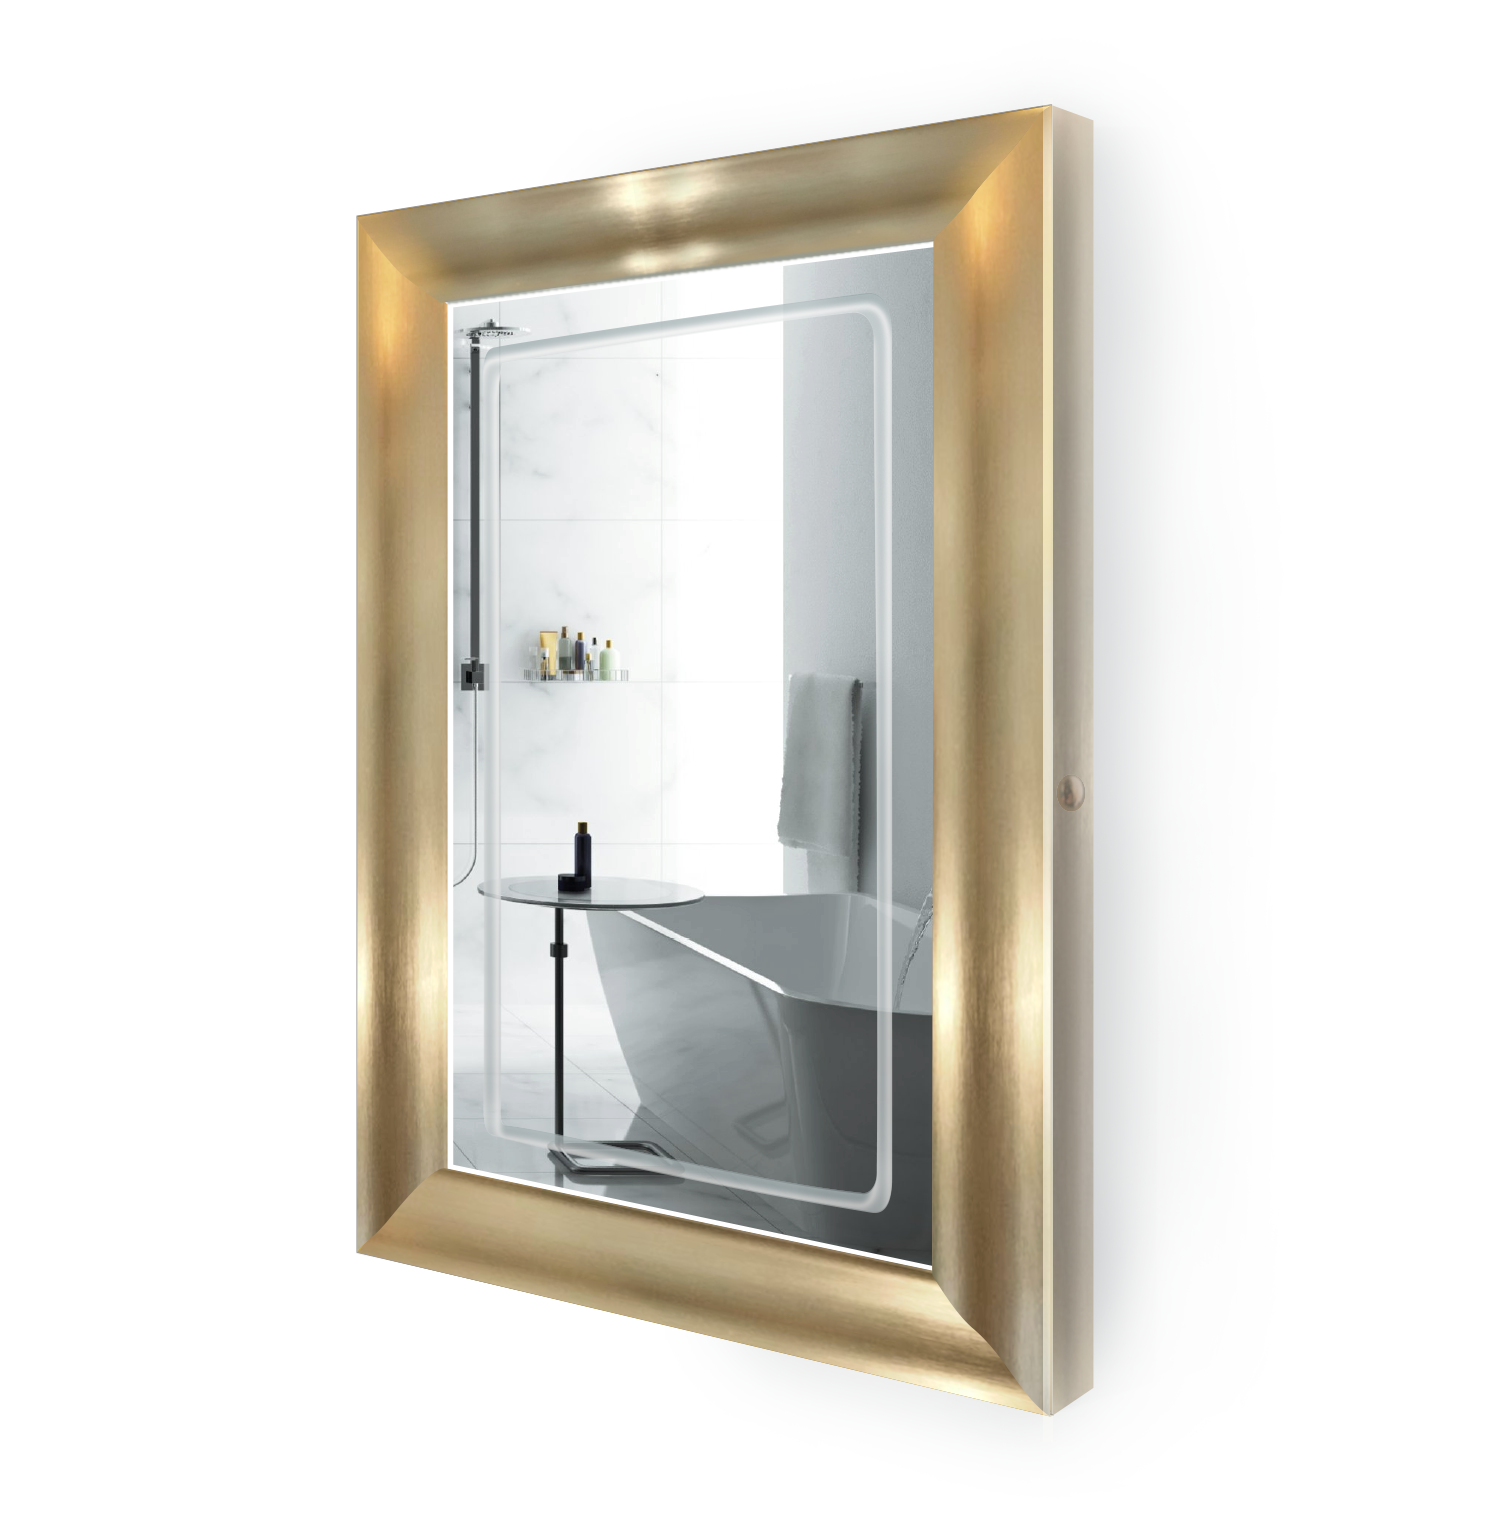 LED Lighted 24 Inch x 36 Inch Bathroom Gold Frame Mirror with Defogger